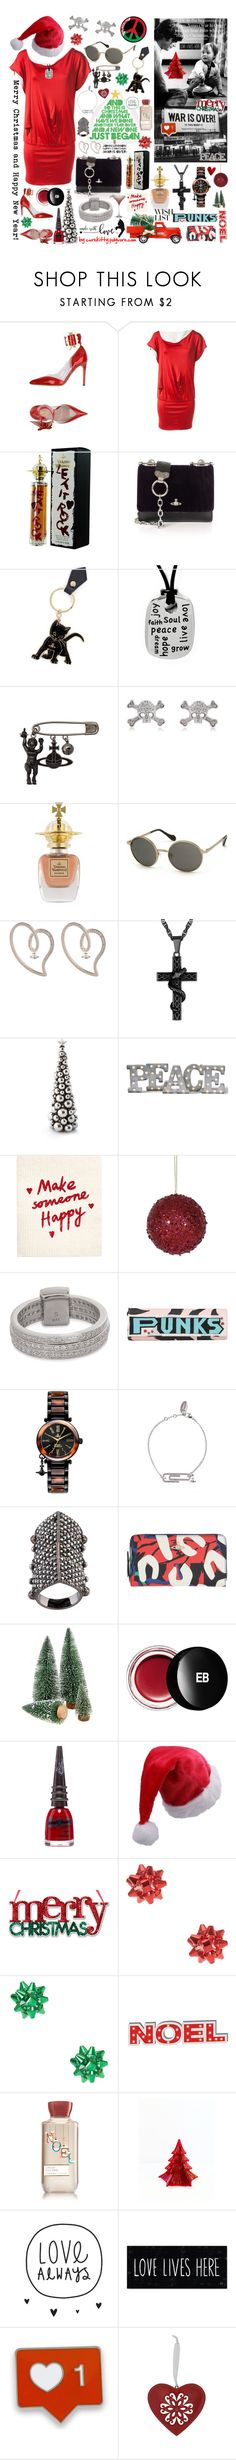 """So This is Christmas - Vivienne Westwood Wish List!"" by curekitty ❤ liked on Polyvore featuring Vivienne Westwood, Grandin Road, Vivienne Westwood Anglomania, Edward Bess, Manic Panic NYC, M&Co and Edie Parker"